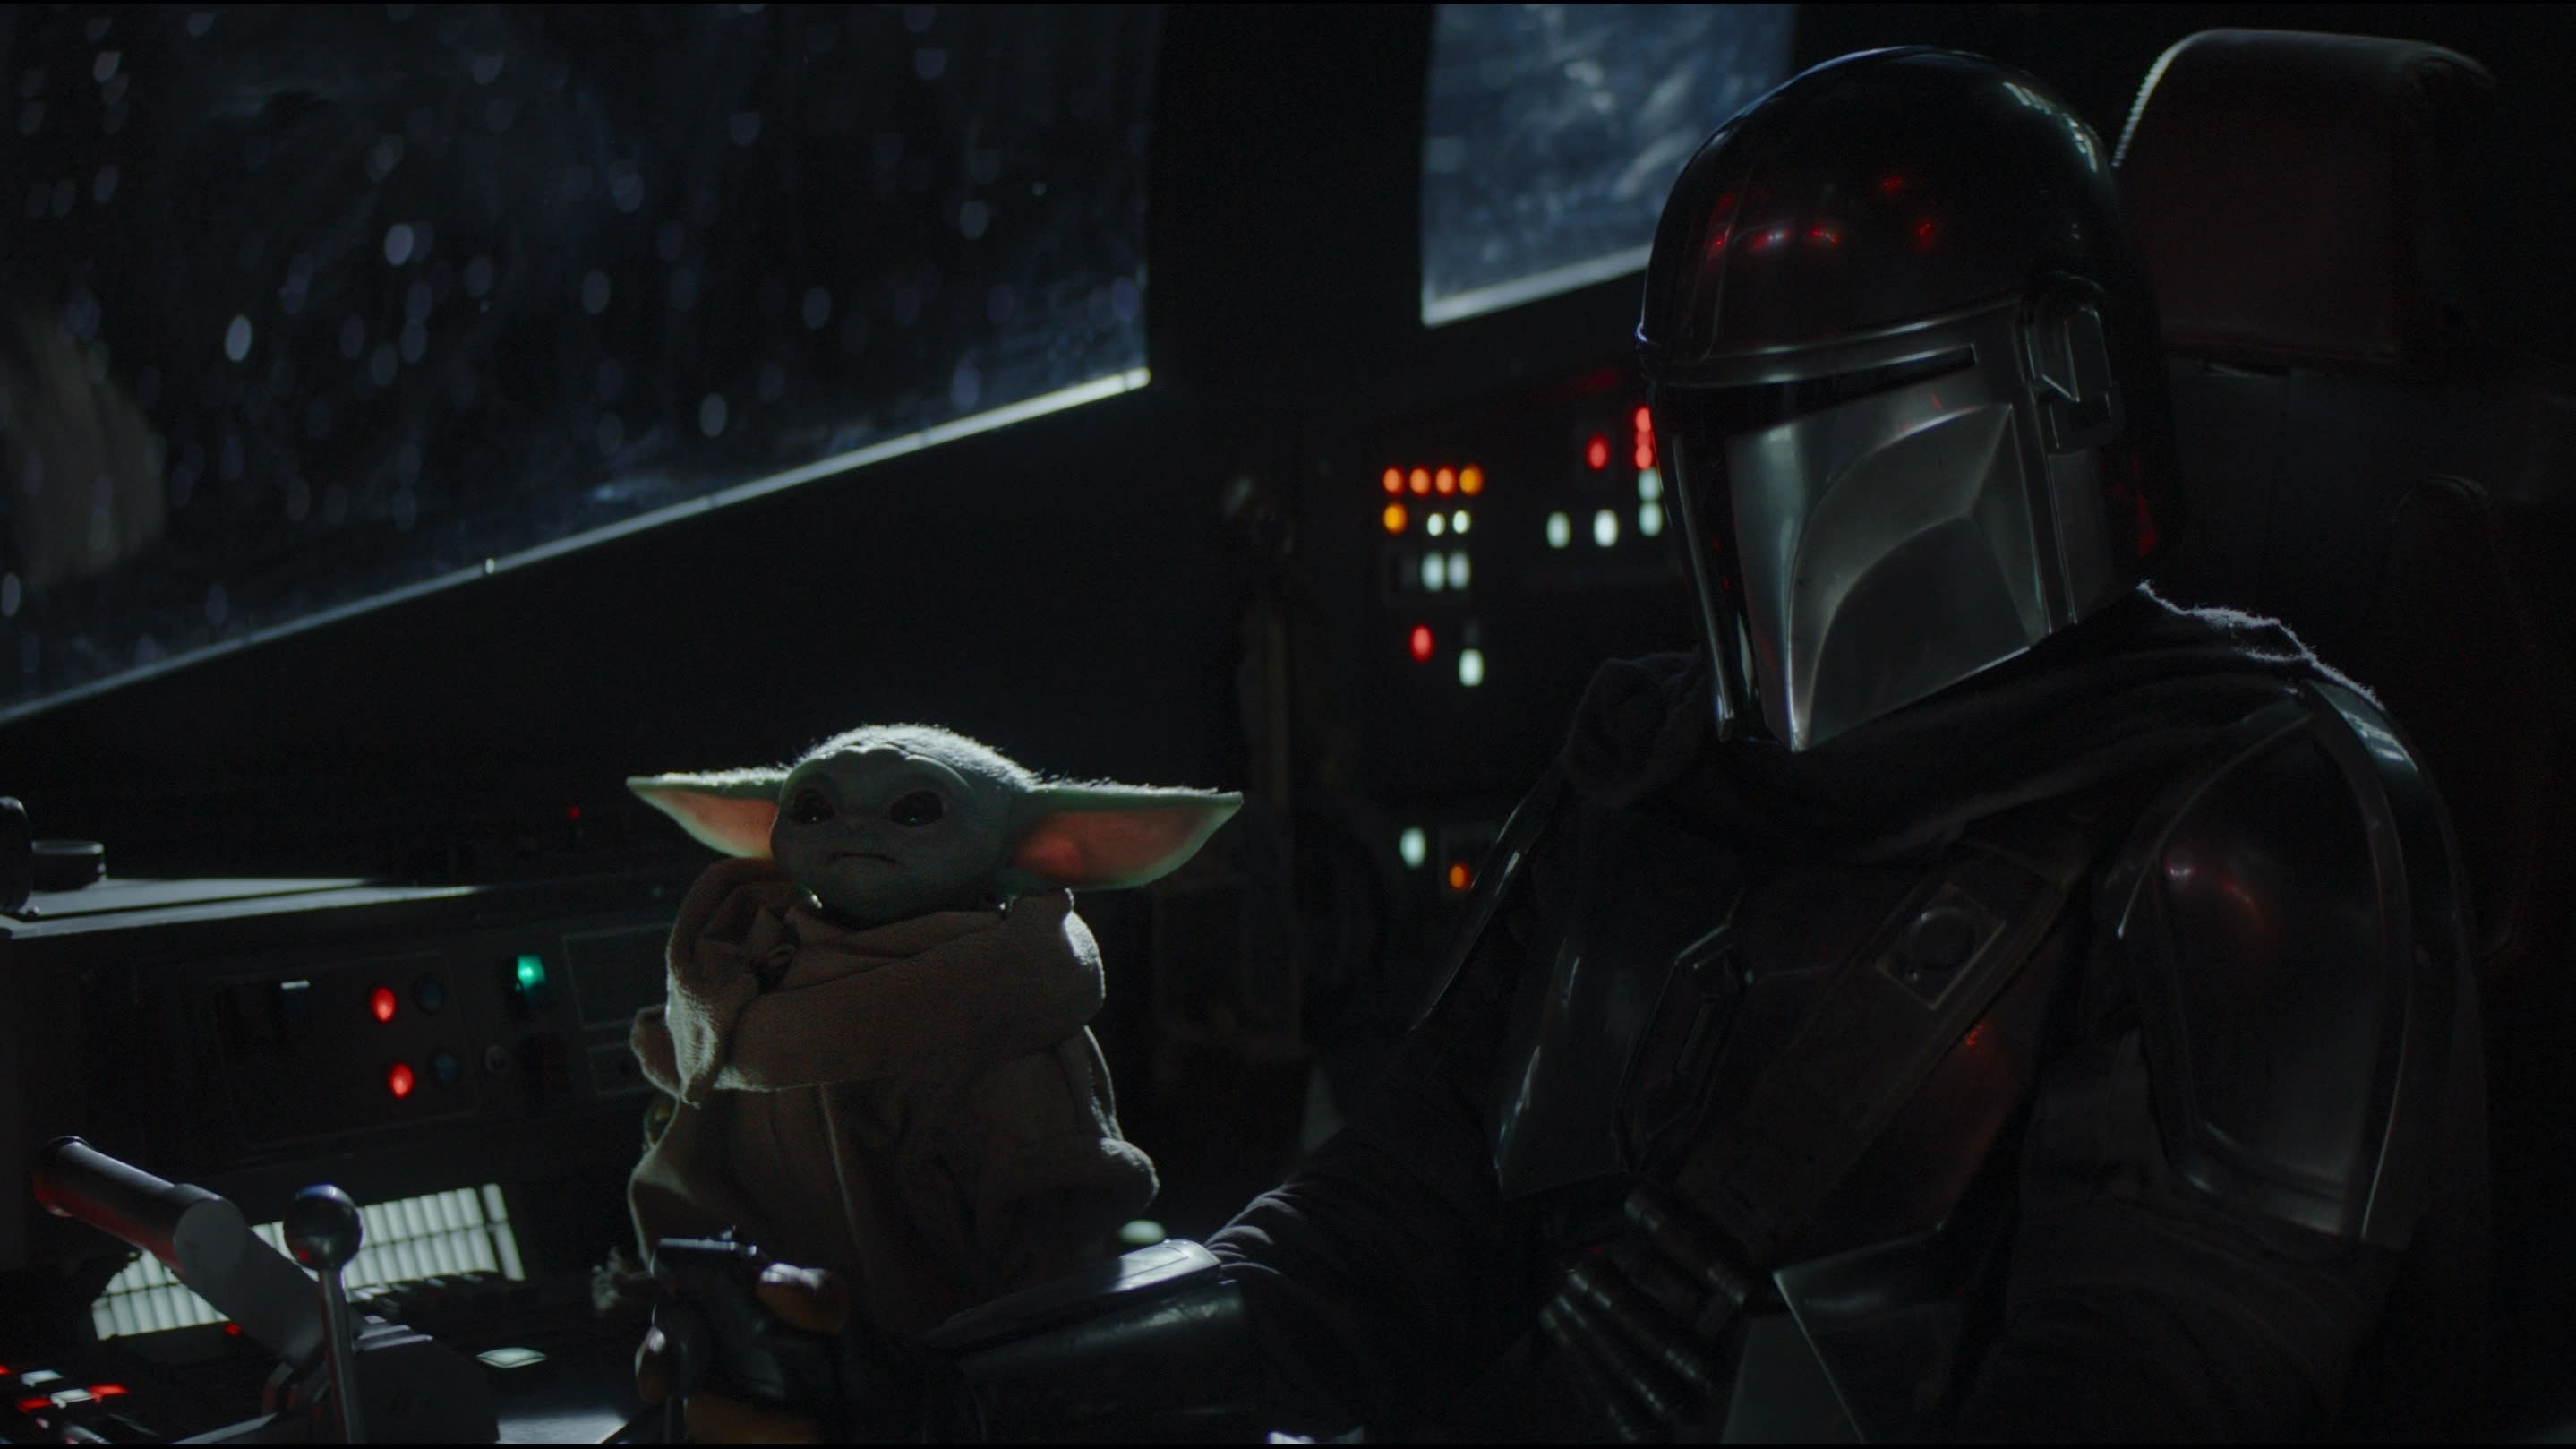 How Cute Is Baby Yoda Flying The Mandalorian Season 1 Episode 4 Tv Fanatic A new hope quotes these are the quotes you're looking for. how cute is baby yoda flying the